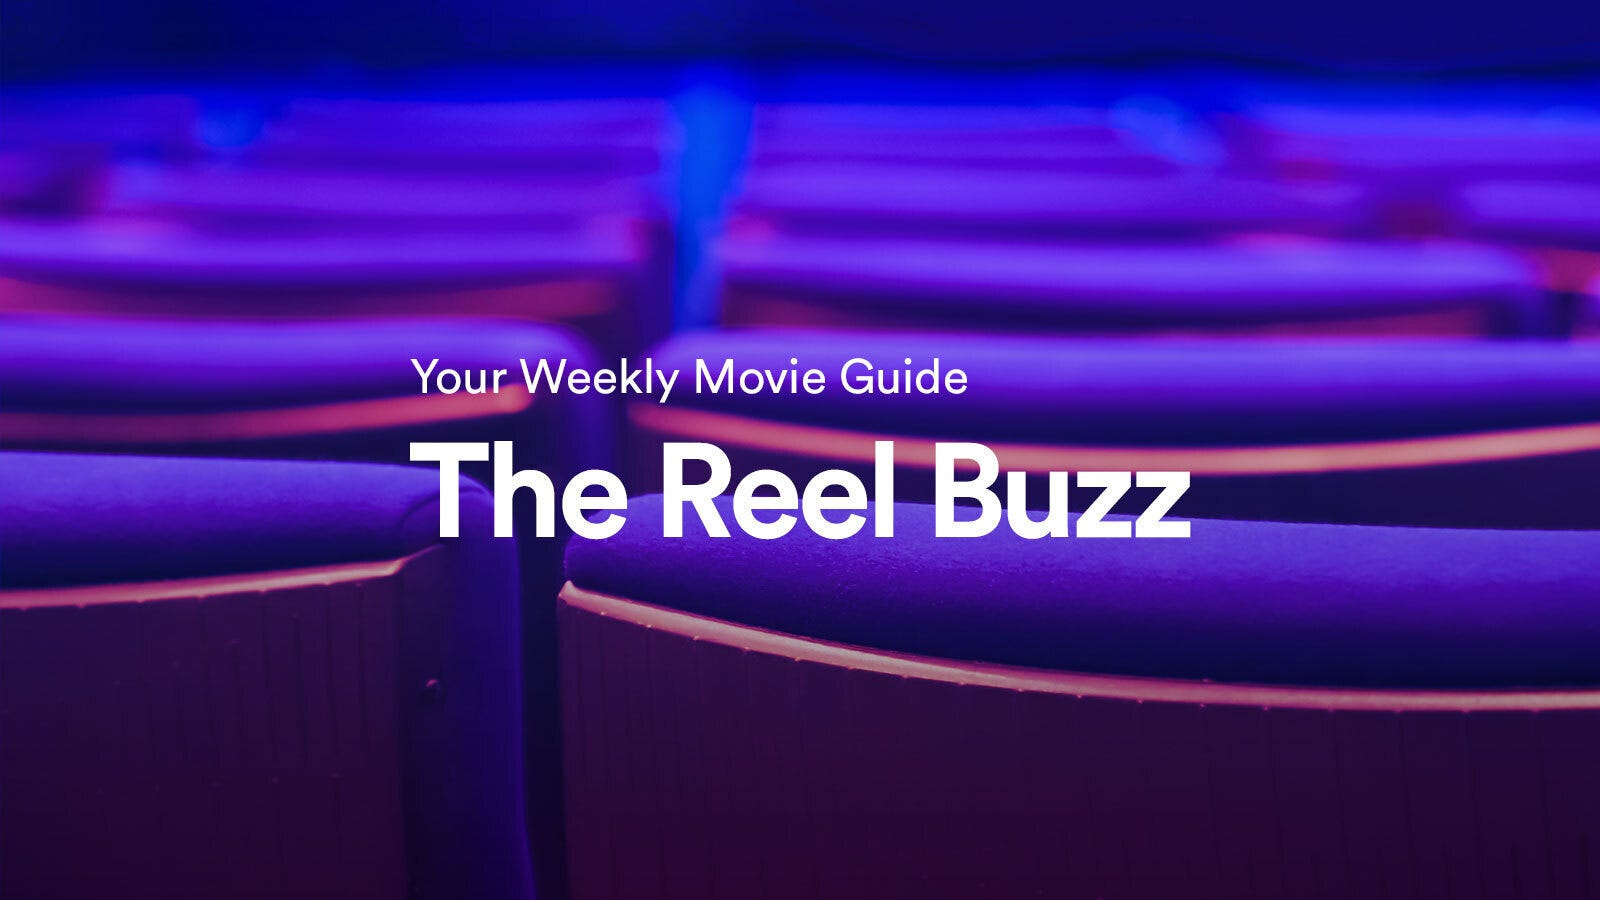 The Reel Buzz: Movies to watch this weekend including 'The Courier,' 'Happily' and more